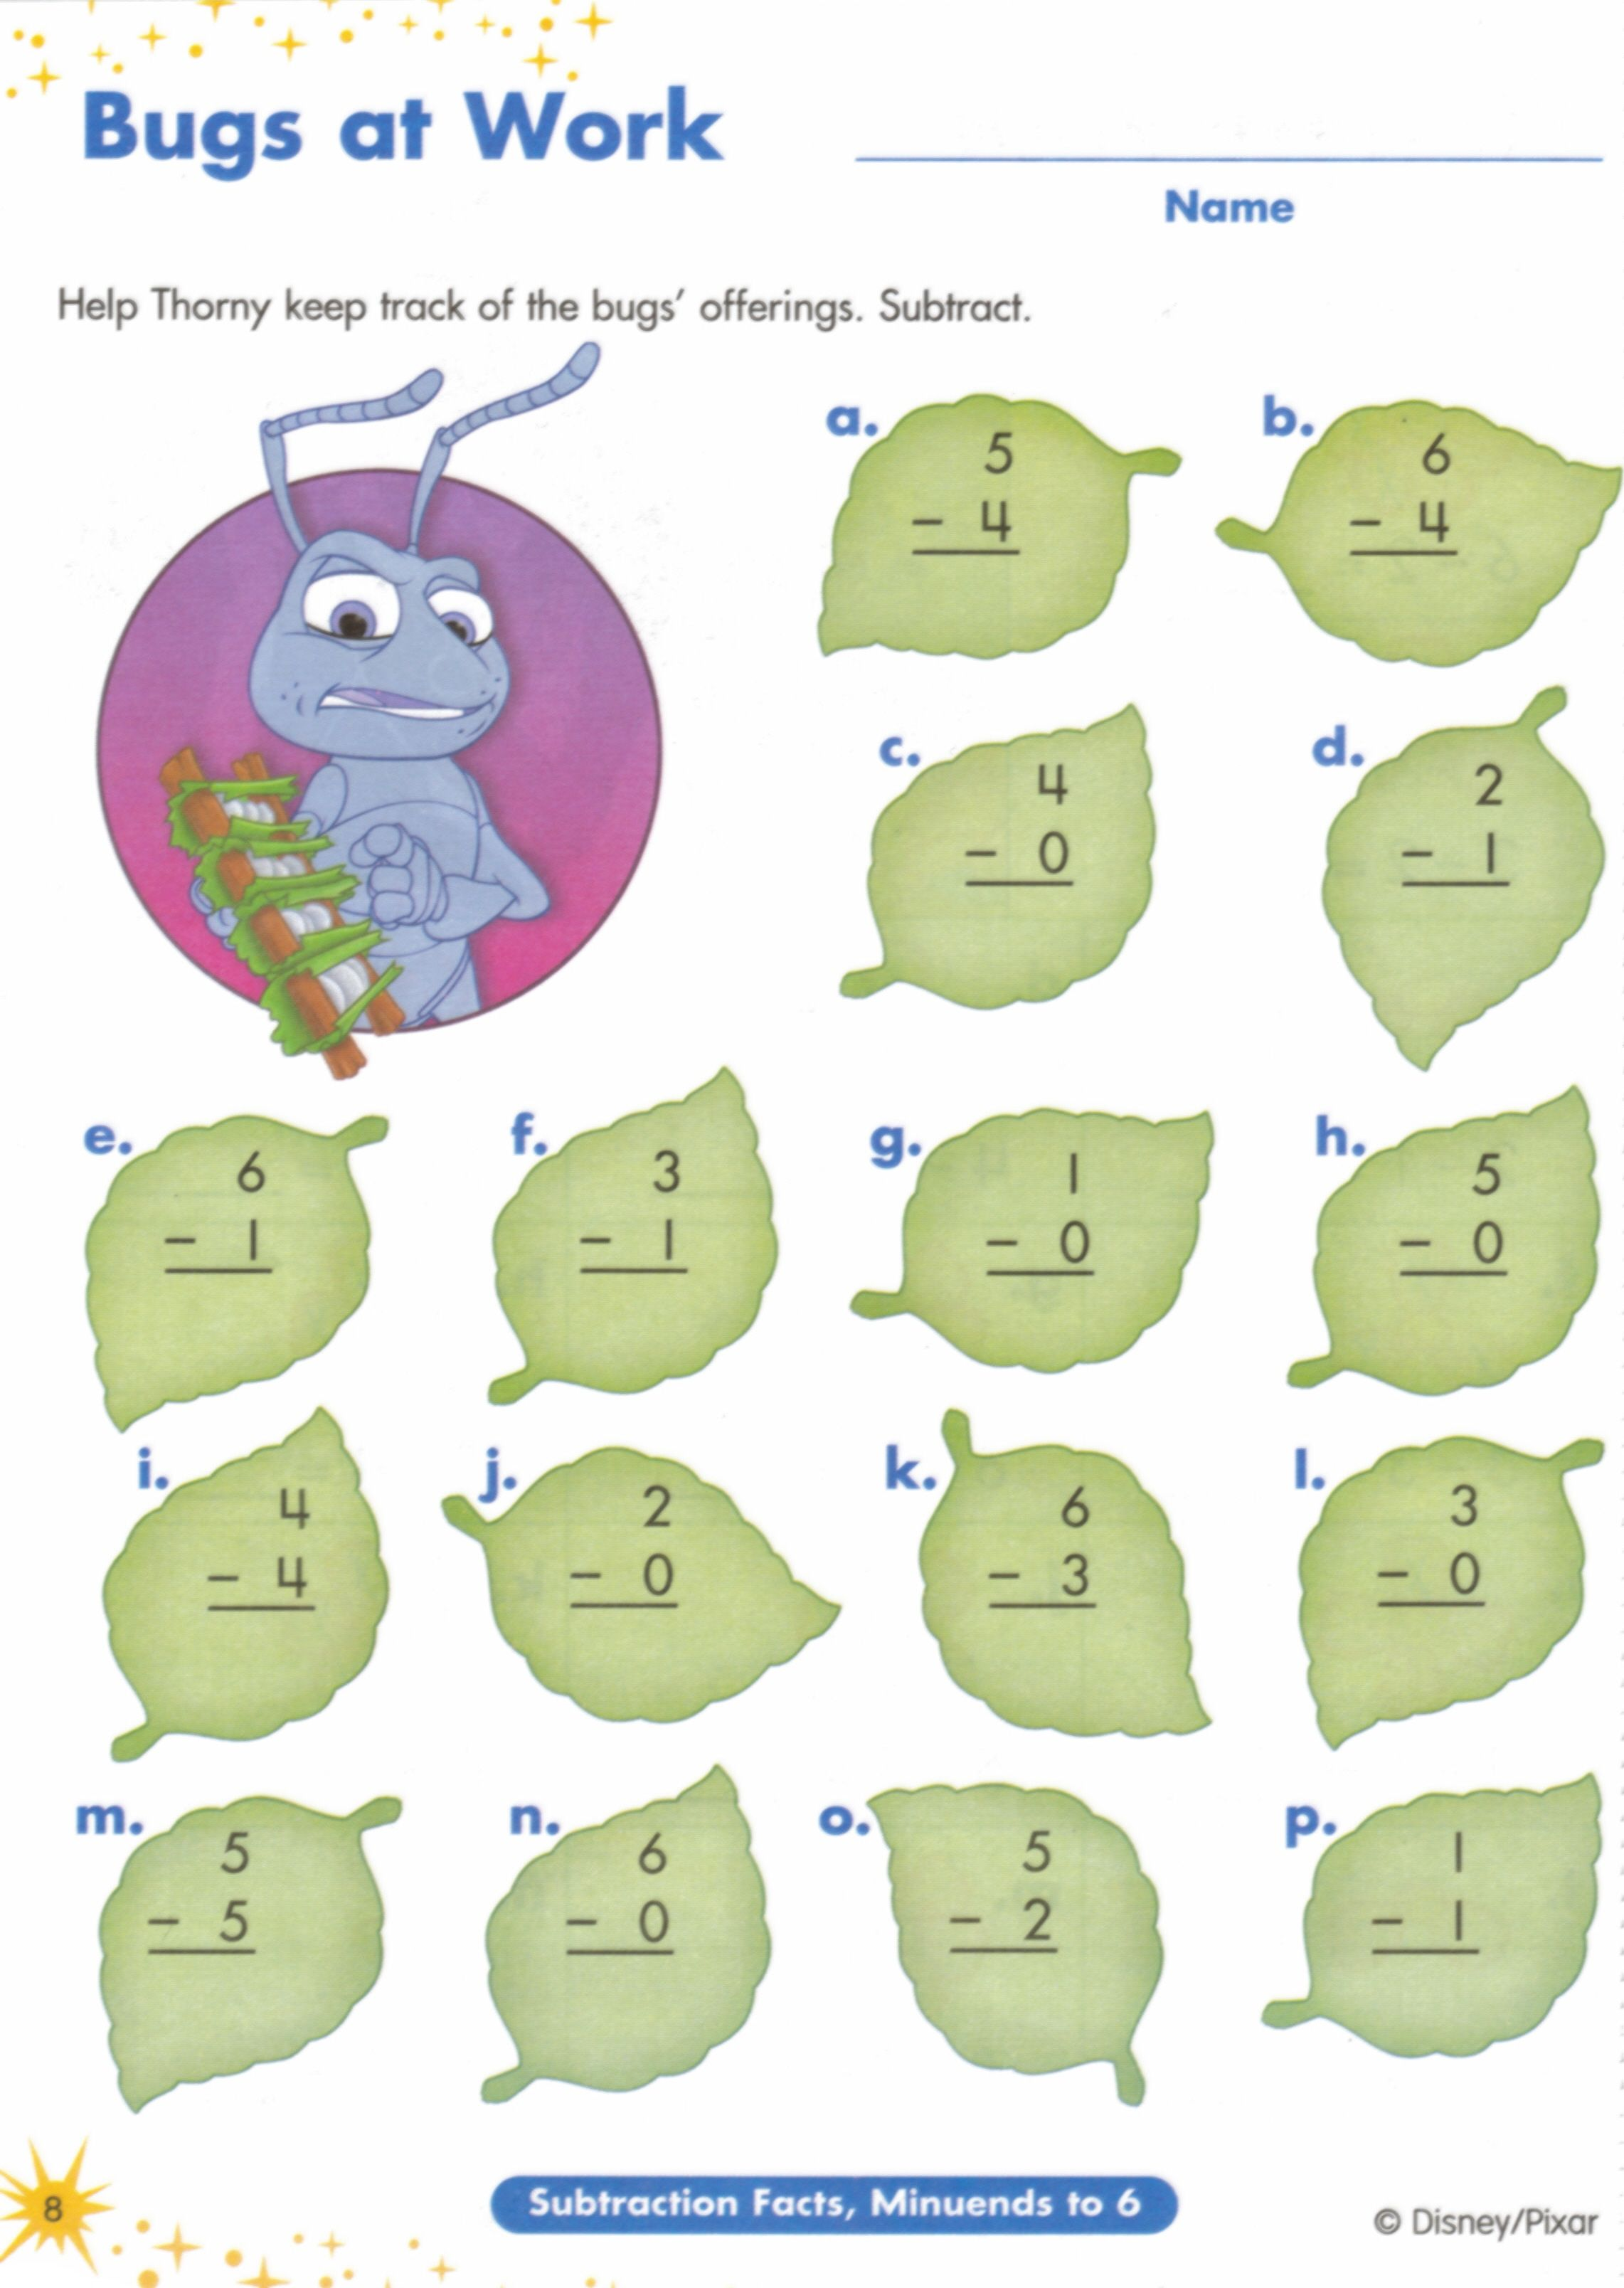 Proatmealus  Personable  Images About Worksheets On Pinterest  Fun Facts For Kids  With Exquisite  Images About Worksheets On Pinterest  Fun Facts For Kids Earth Day Worksheets And Jungles With Amusing Ks Worksheets Maths Also Basic Mathematics Worksheets In Addition Angles Worksheet For Grade  And Adverb And Adjective Clauses Worksheets As Well As Redox Reactions Worksheets Additionally Reading Worksheets For Th Grade Printable From Pinterestcom With Proatmealus  Exquisite  Images About Worksheets On Pinterest  Fun Facts For Kids  With Amusing  Images About Worksheets On Pinterest  Fun Facts For Kids Earth Day Worksheets And Jungles And Personable Ks Worksheets Maths Also Basic Mathematics Worksheets In Addition Angles Worksheet For Grade  From Pinterestcom